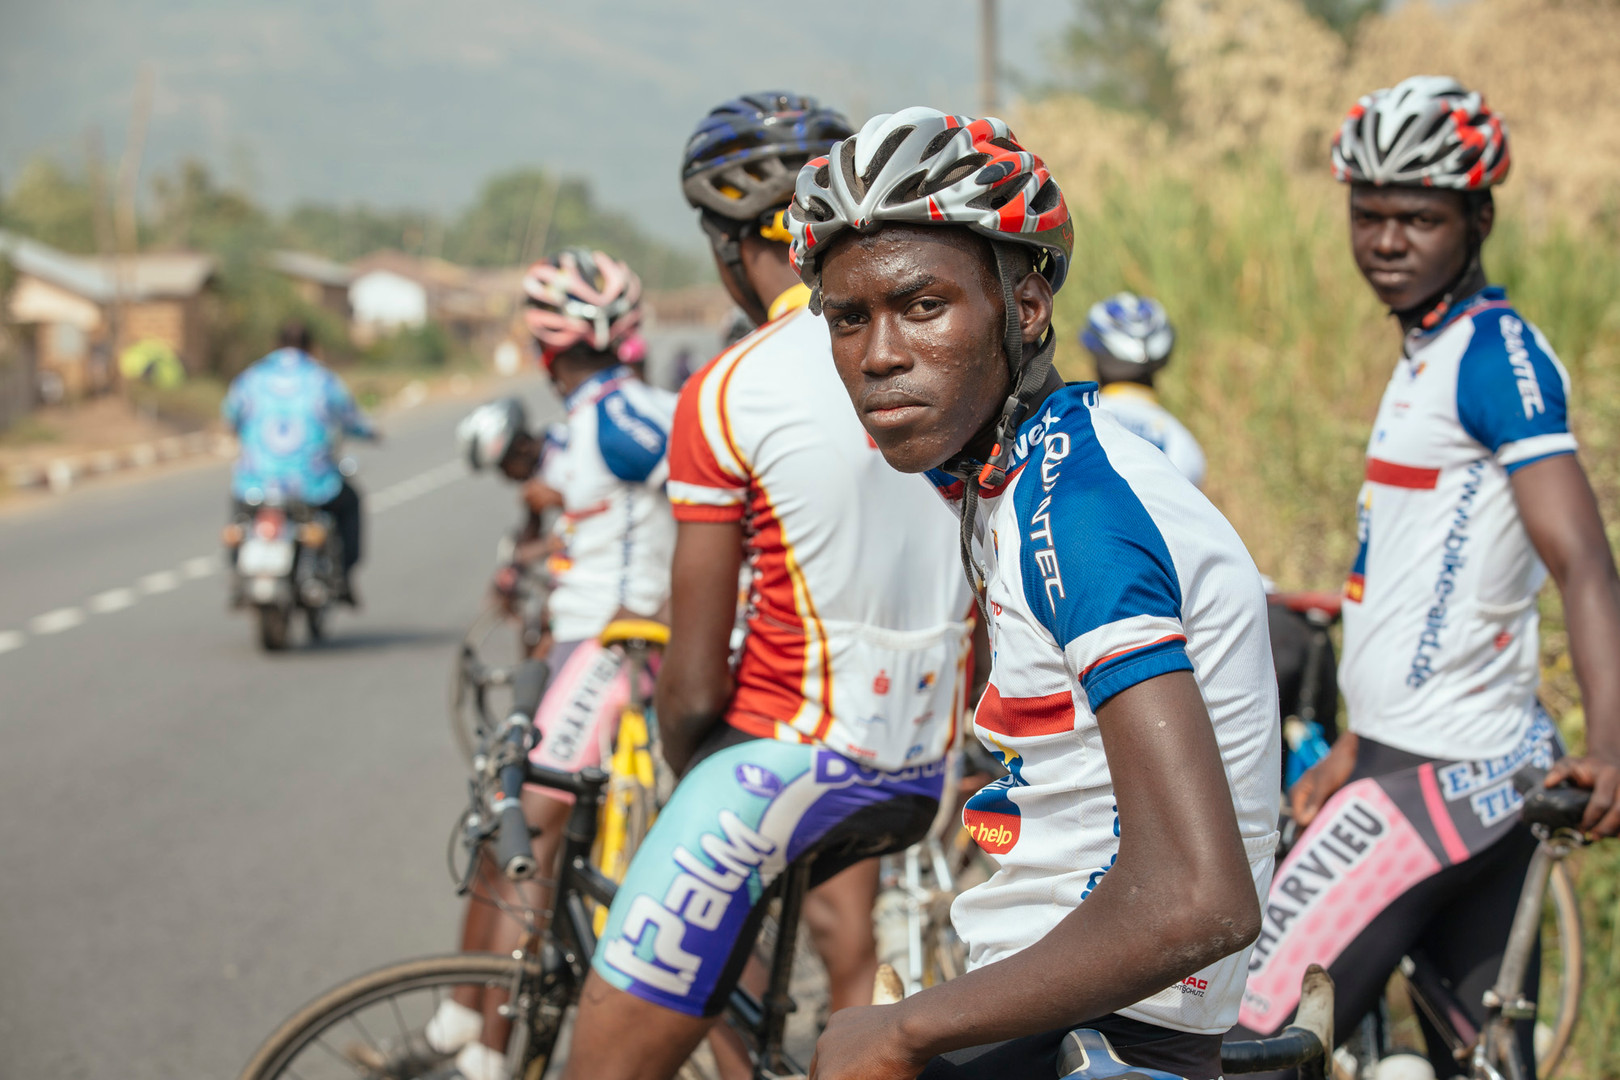 0260_Togo_KpaliméCyclingProject_20151221